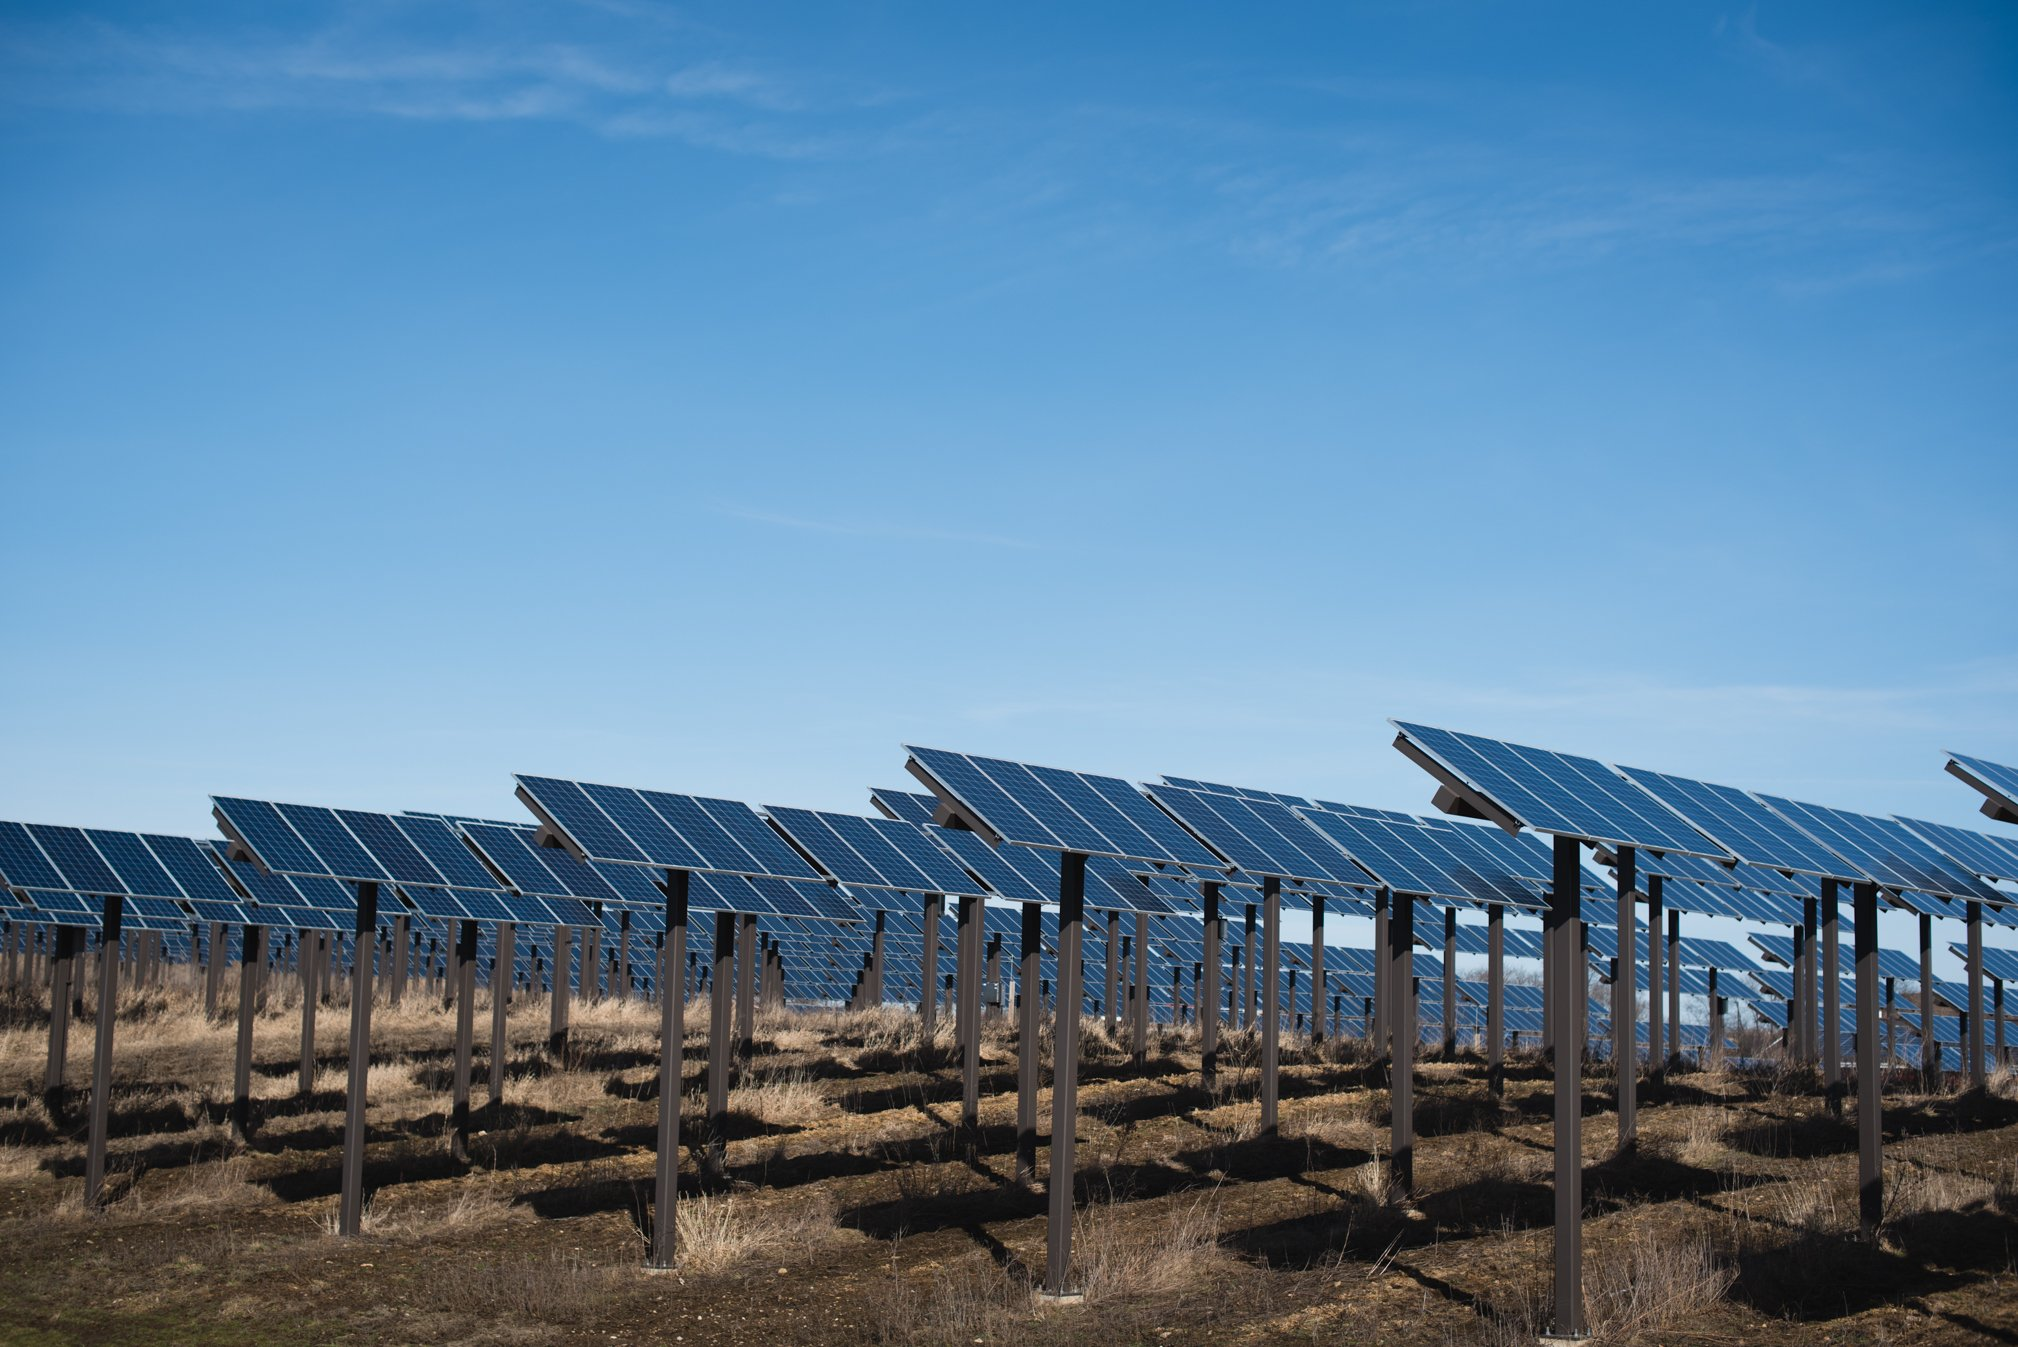 WEC proposes the state's largest solar battery storage project - UW Badger Herald